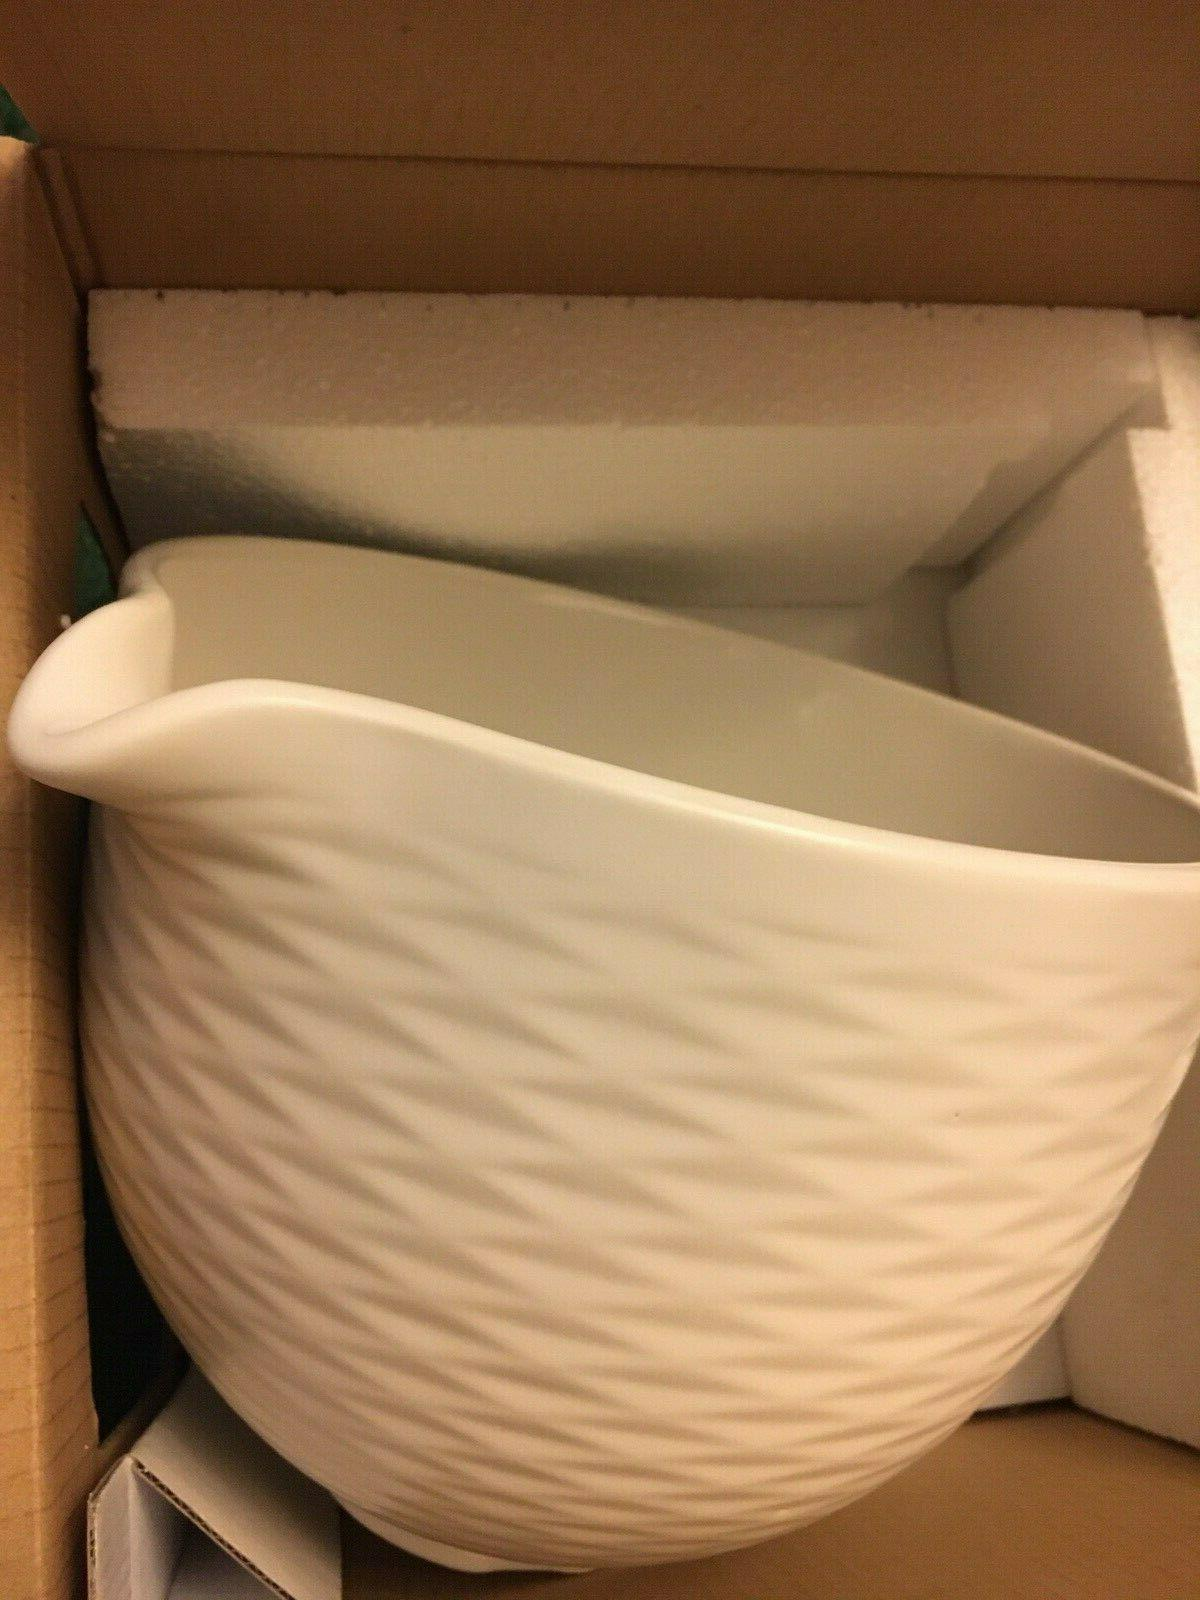 5 quart embossed ceramic bowl ksmcb5tlw